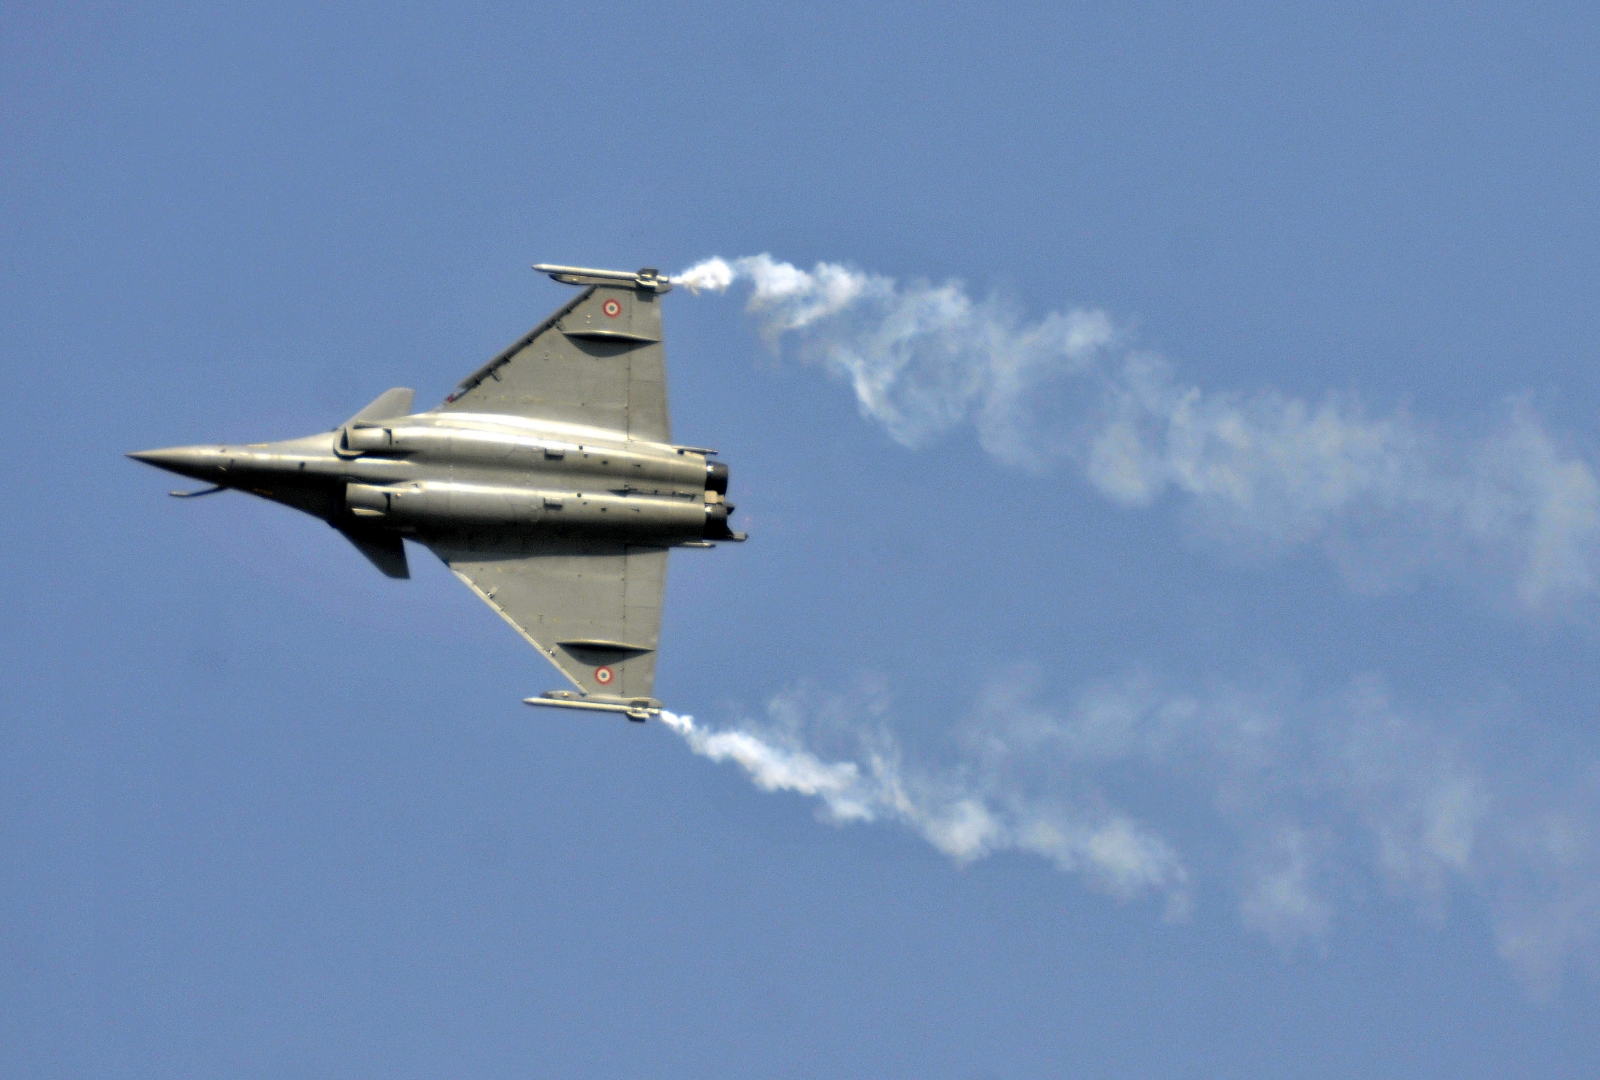 Aero India 2015 show and defence deals